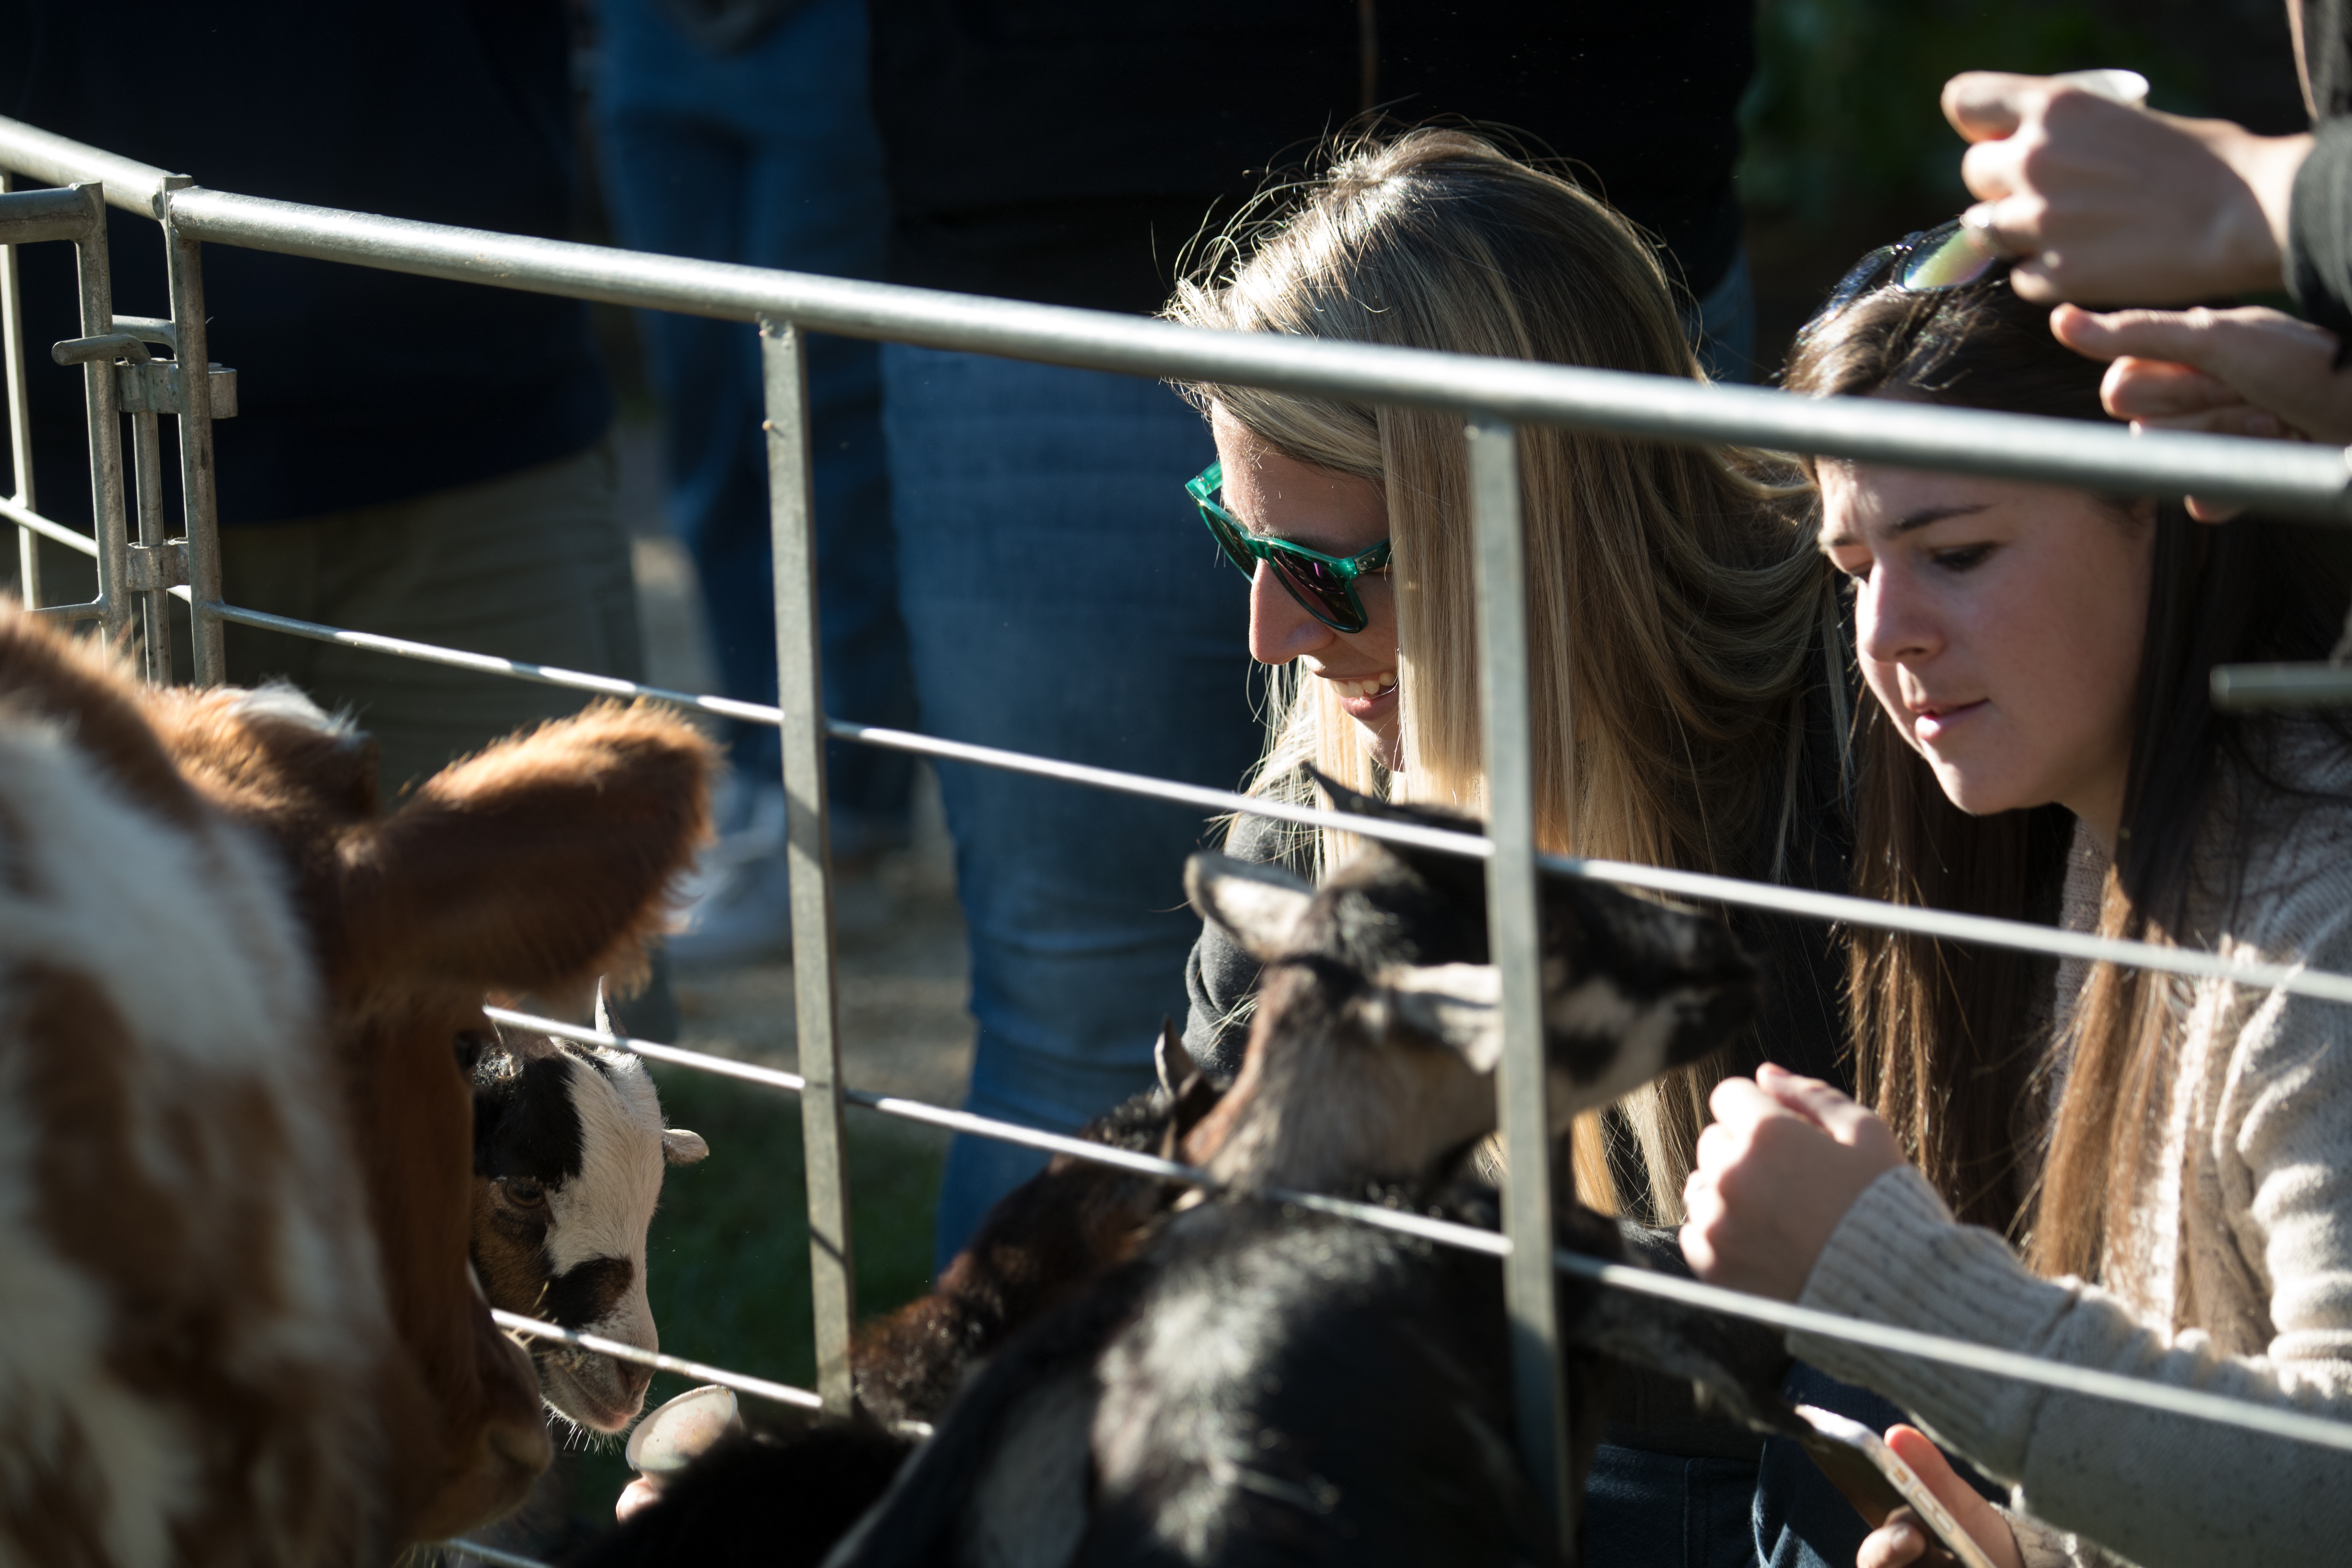 20171027-AMS-LSC-0115 (37358614004).jpg Young and small farm animals brought smiles to the downtown visitors and shoppers of the USDA Farmers